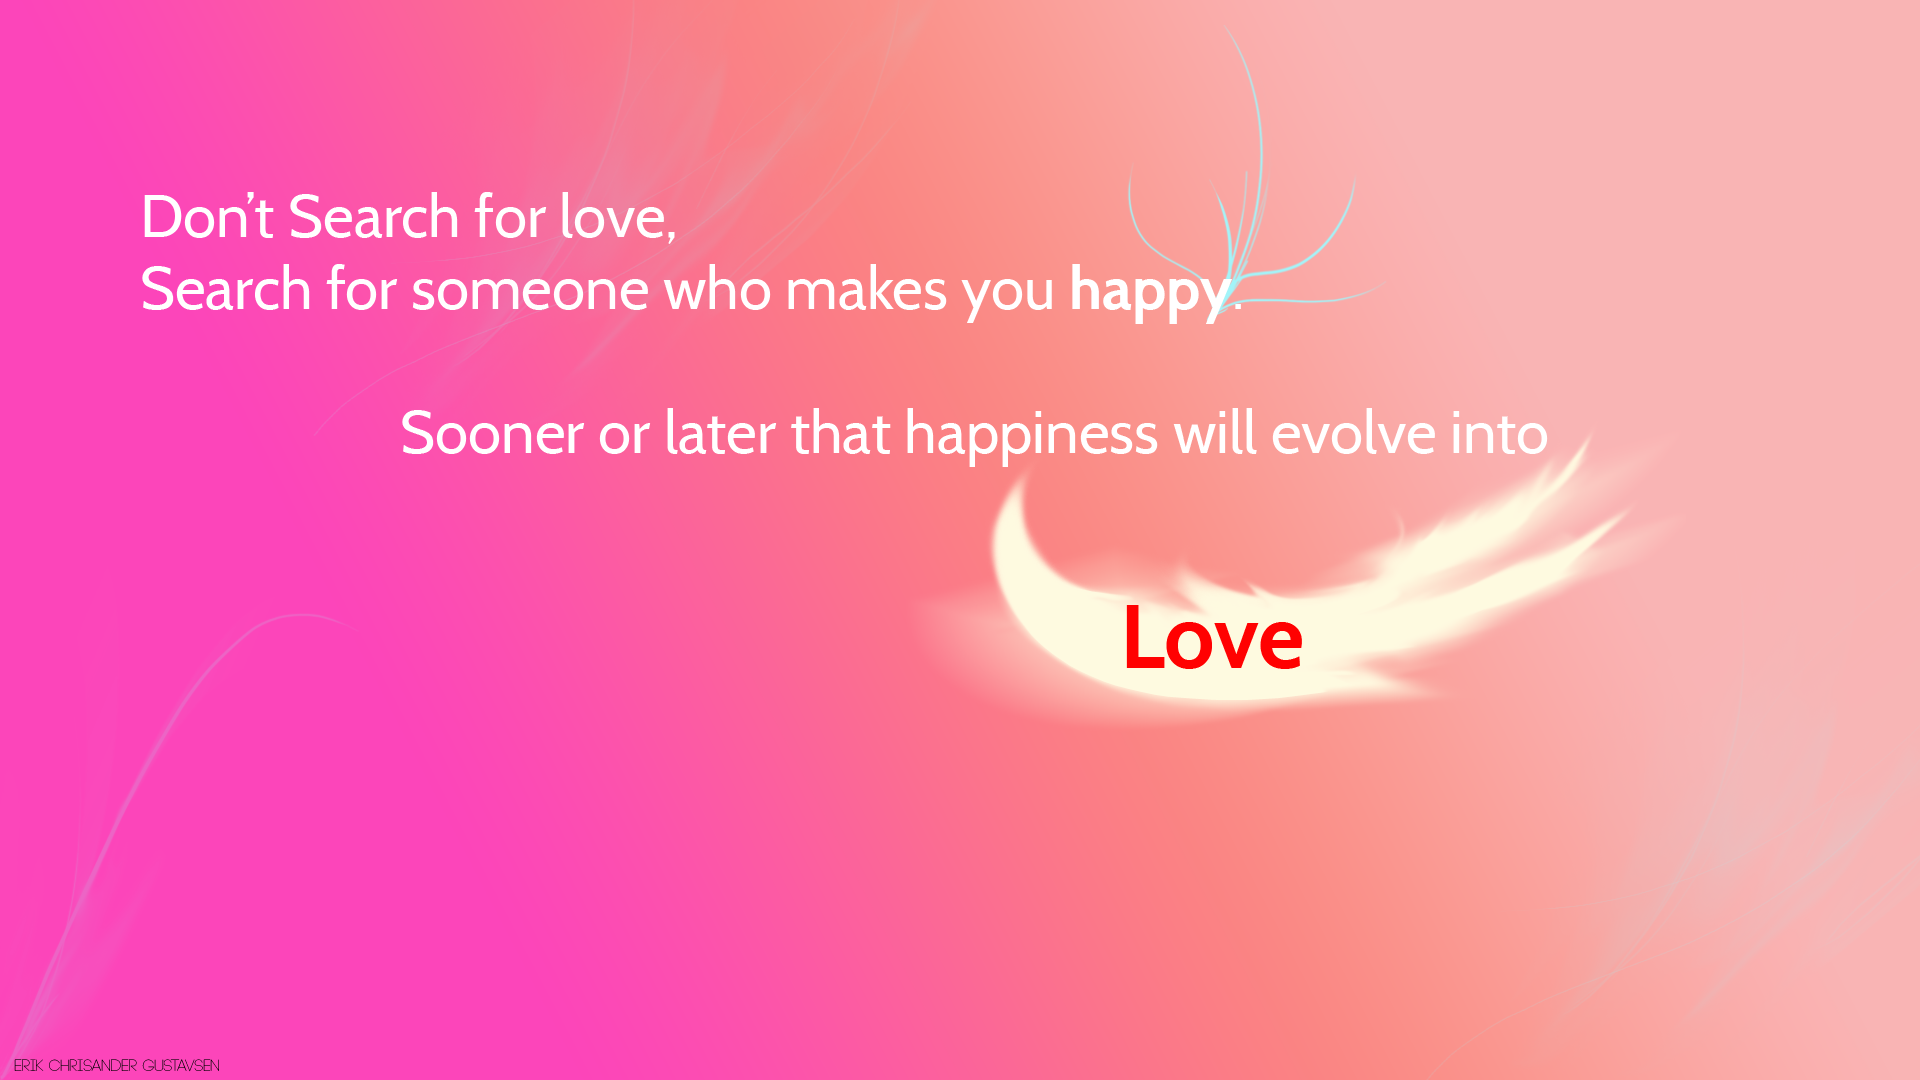 New Latest Love Quotes Wallpaper : Best Love Quotes Wallpapers - WallpaperSafari